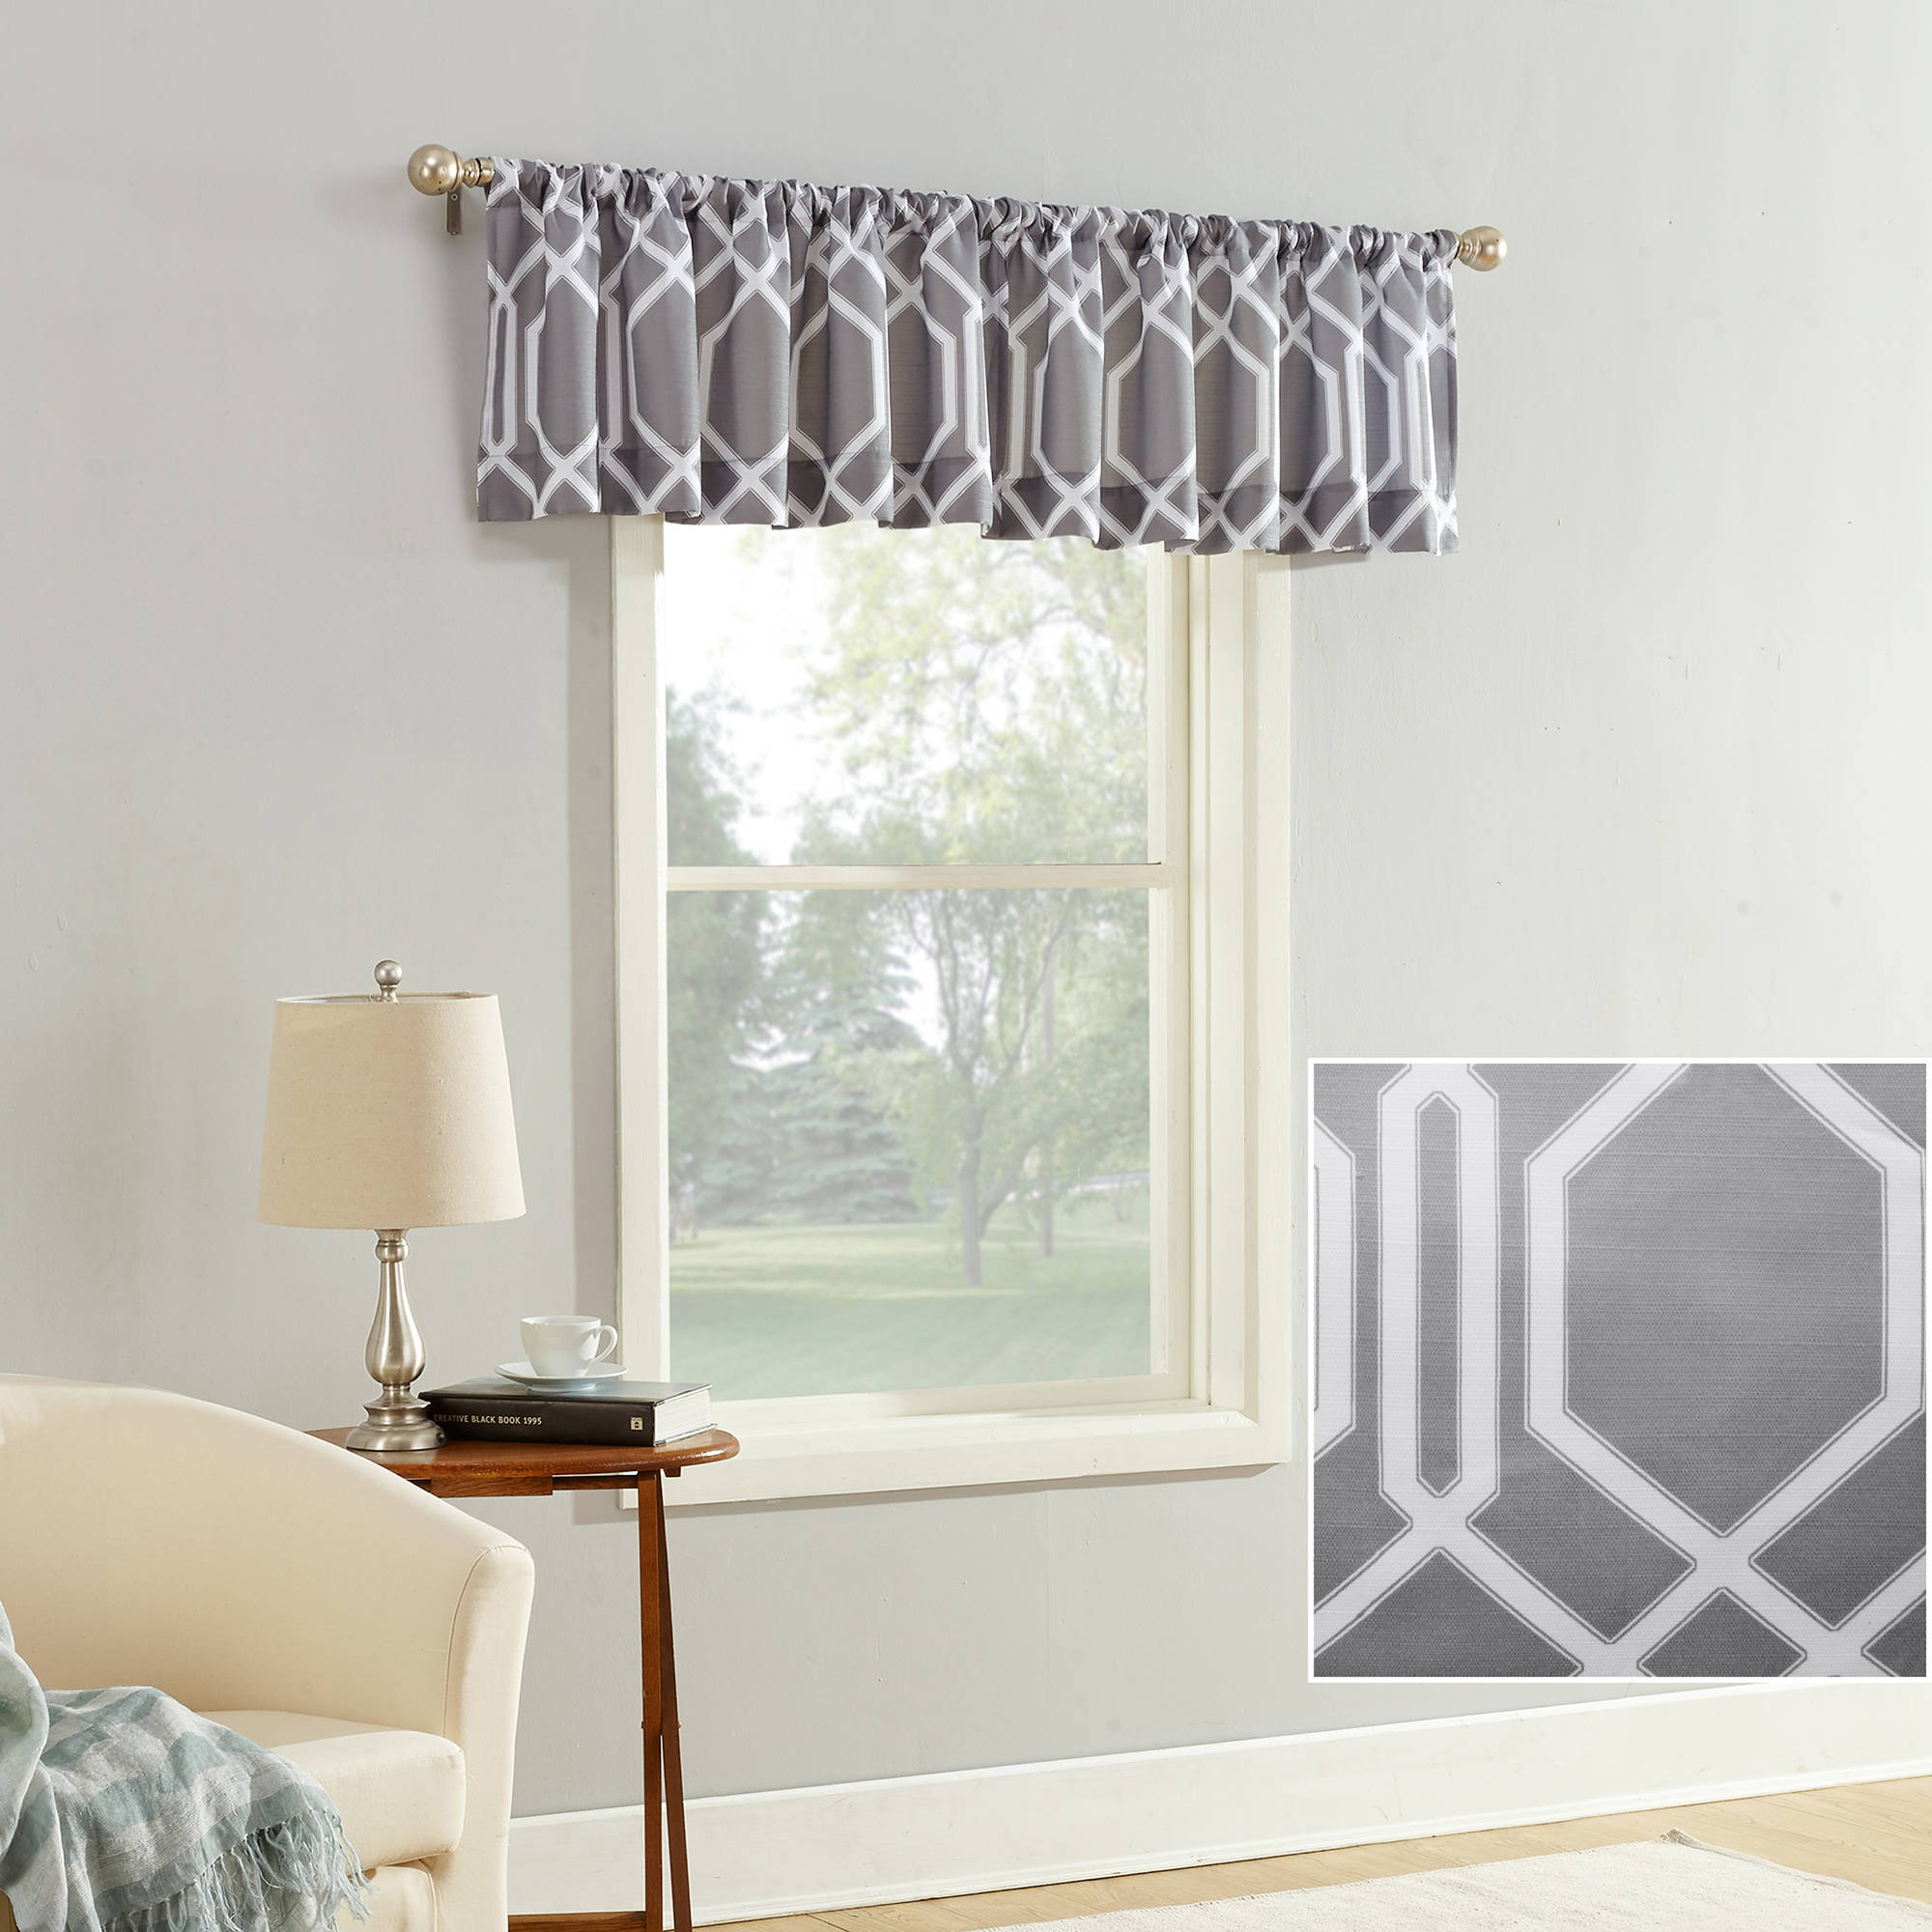 Mainstays Watson Textured Valance Curtain